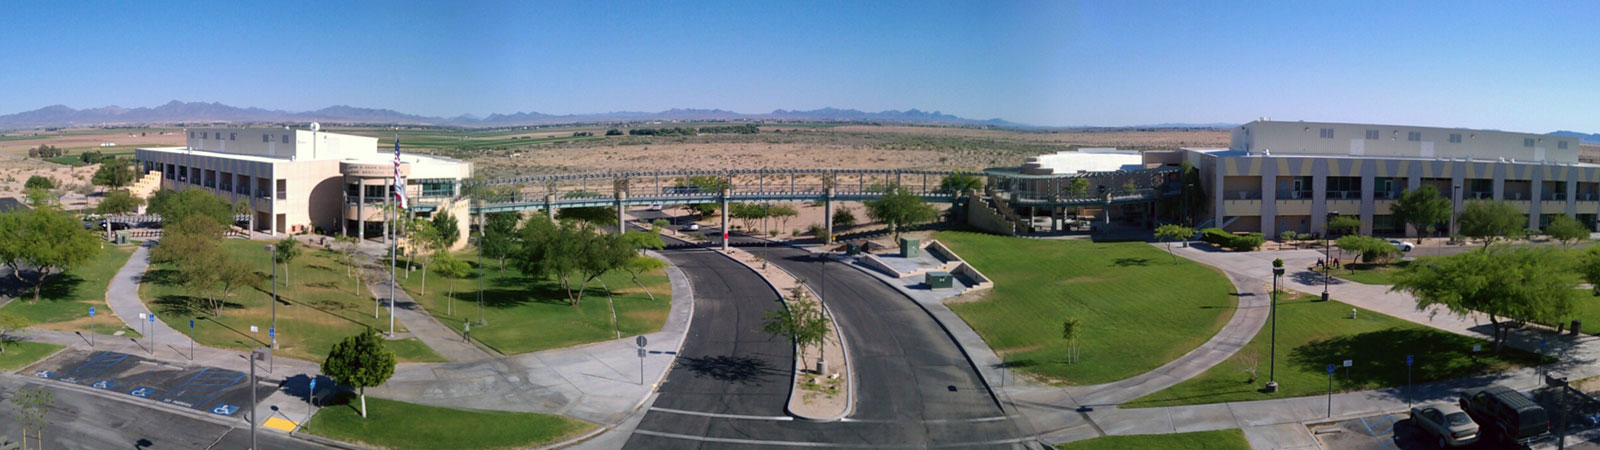 Palo Verde College Campus